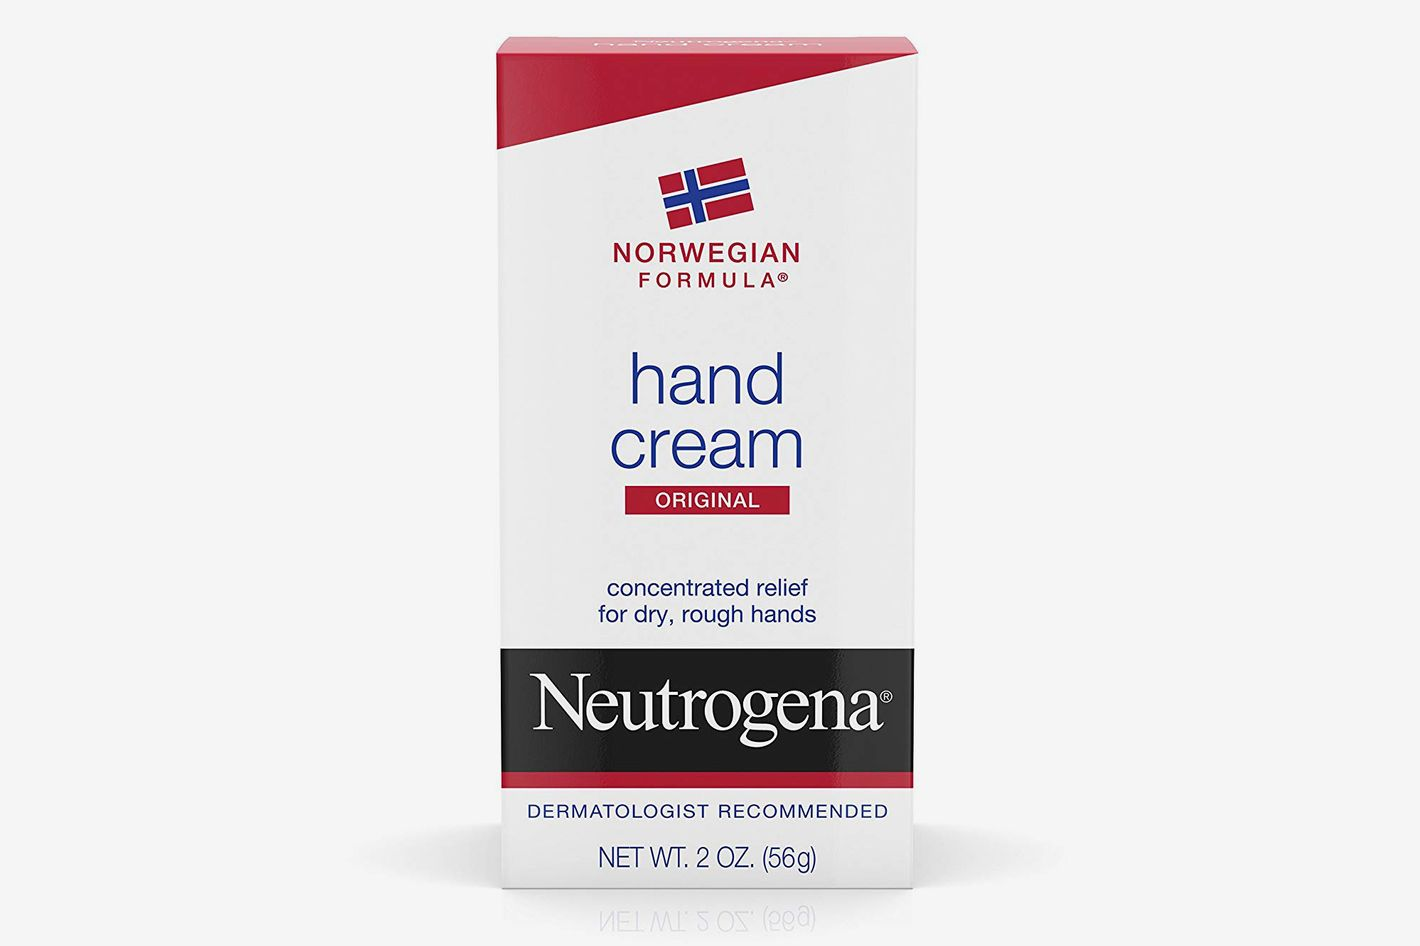 Neutrogena Norwegian Formula Hand Cream, 2 Oz (Pack of 2)